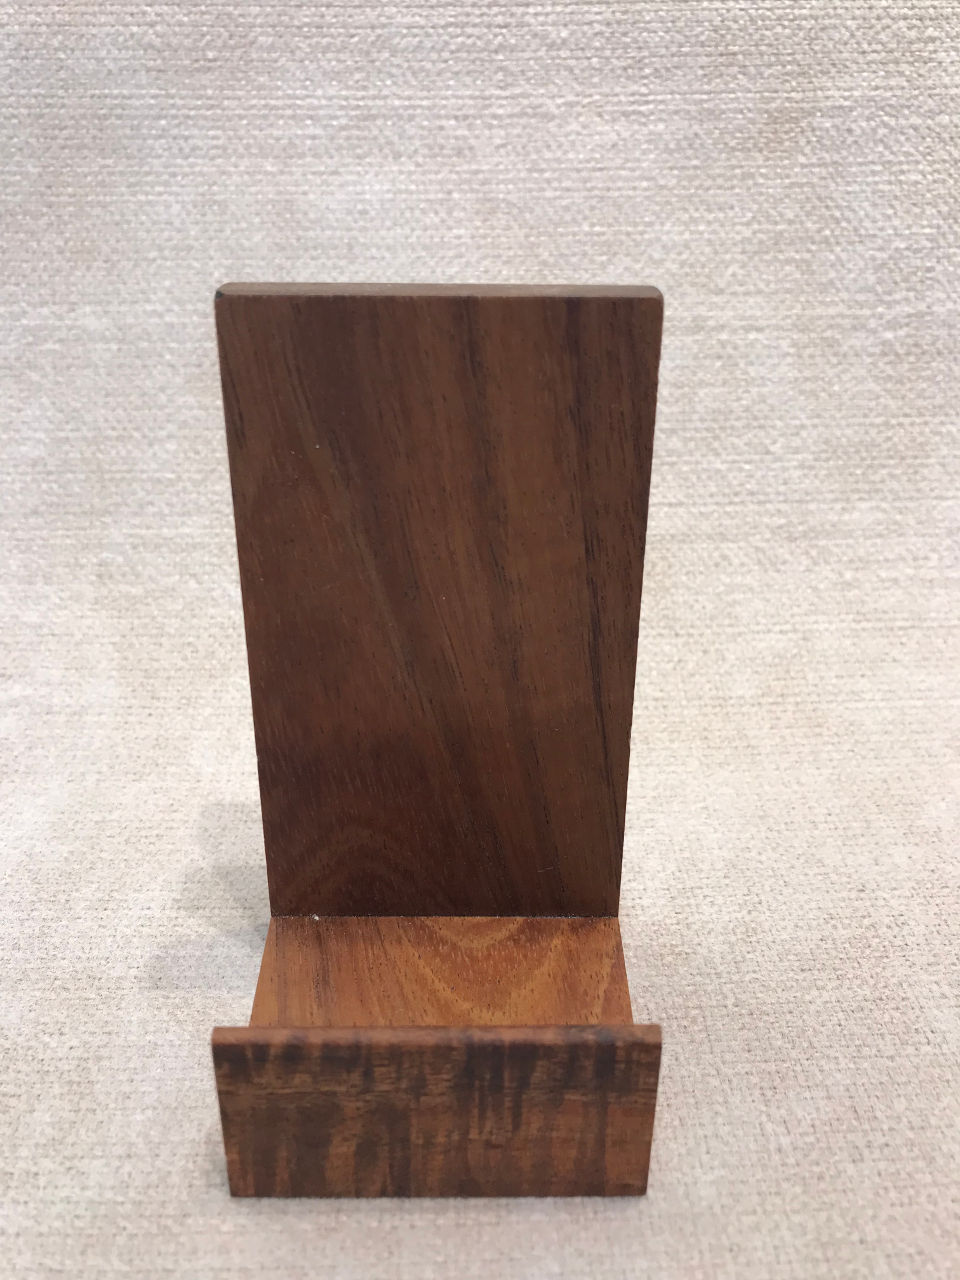 Koa Wood Business Card Holder Vertical